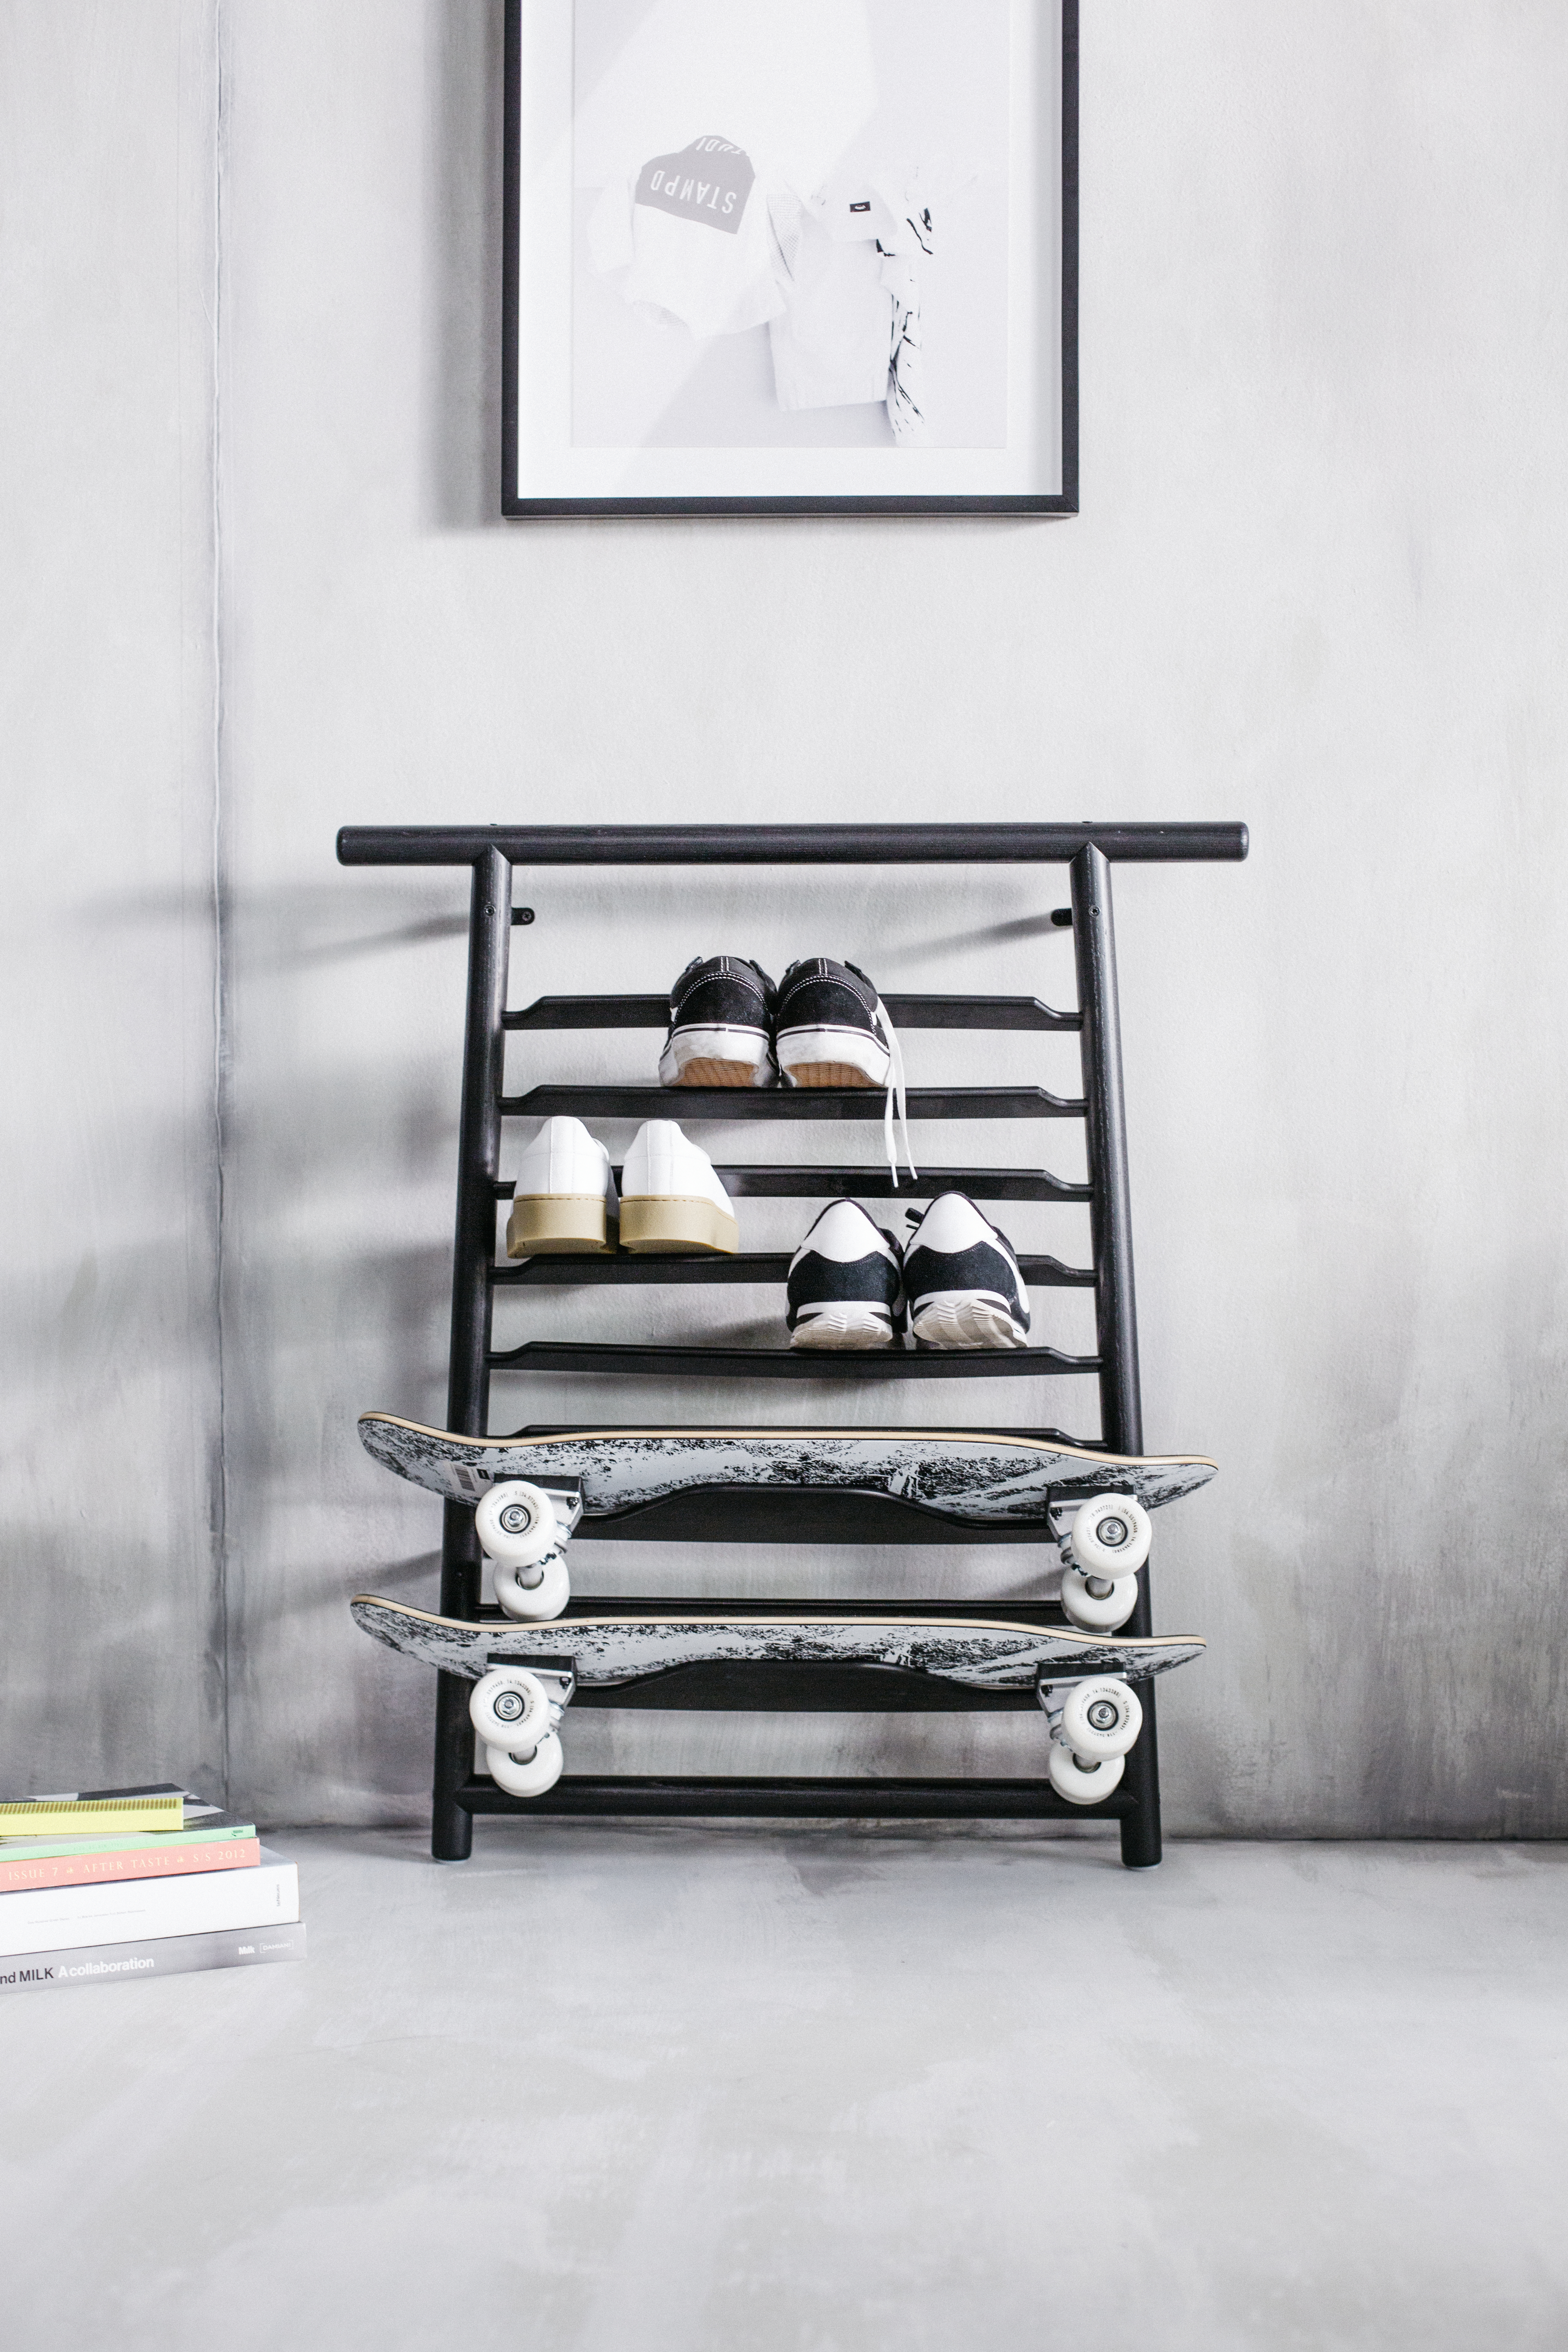 Ikea launches a streetwear-inspired line of home goods